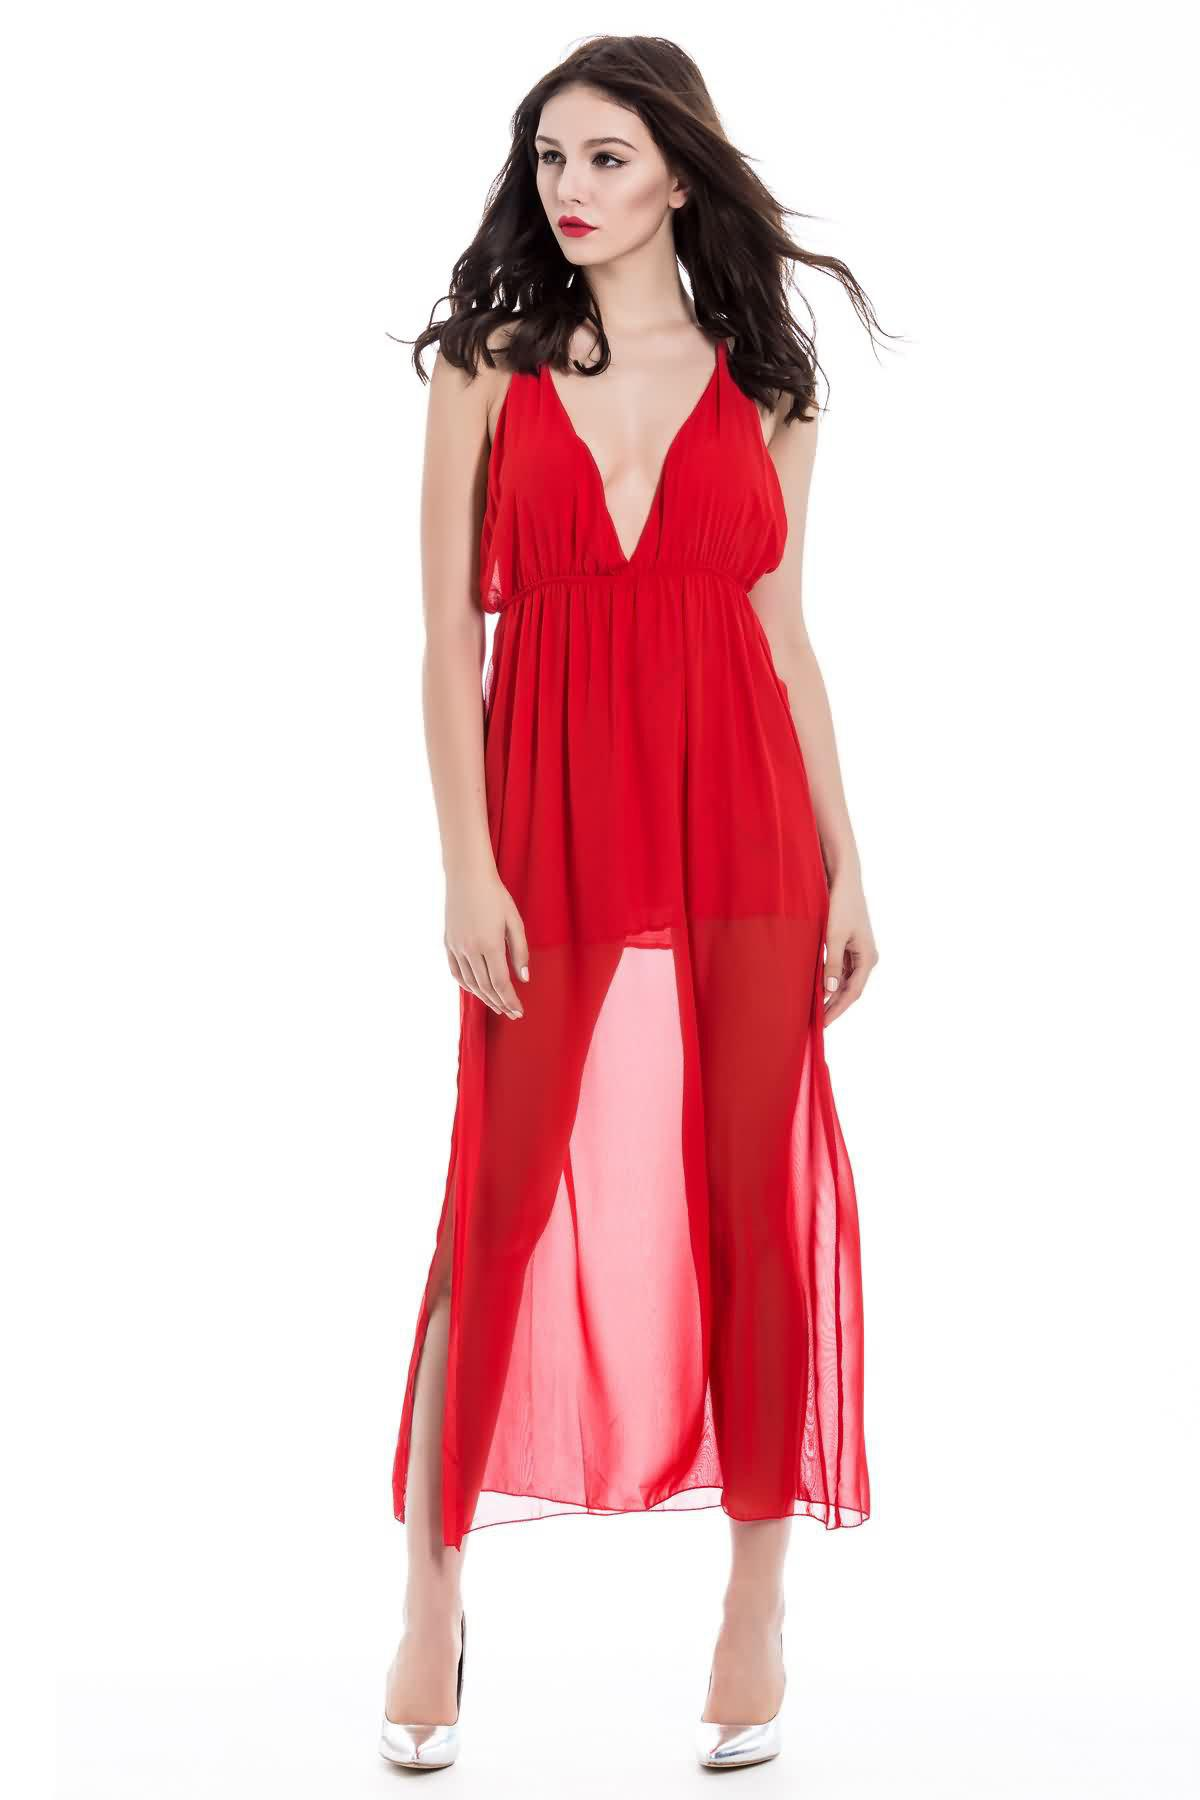 Side Slit Plunging Neck Backless Maxi Dress - RED S